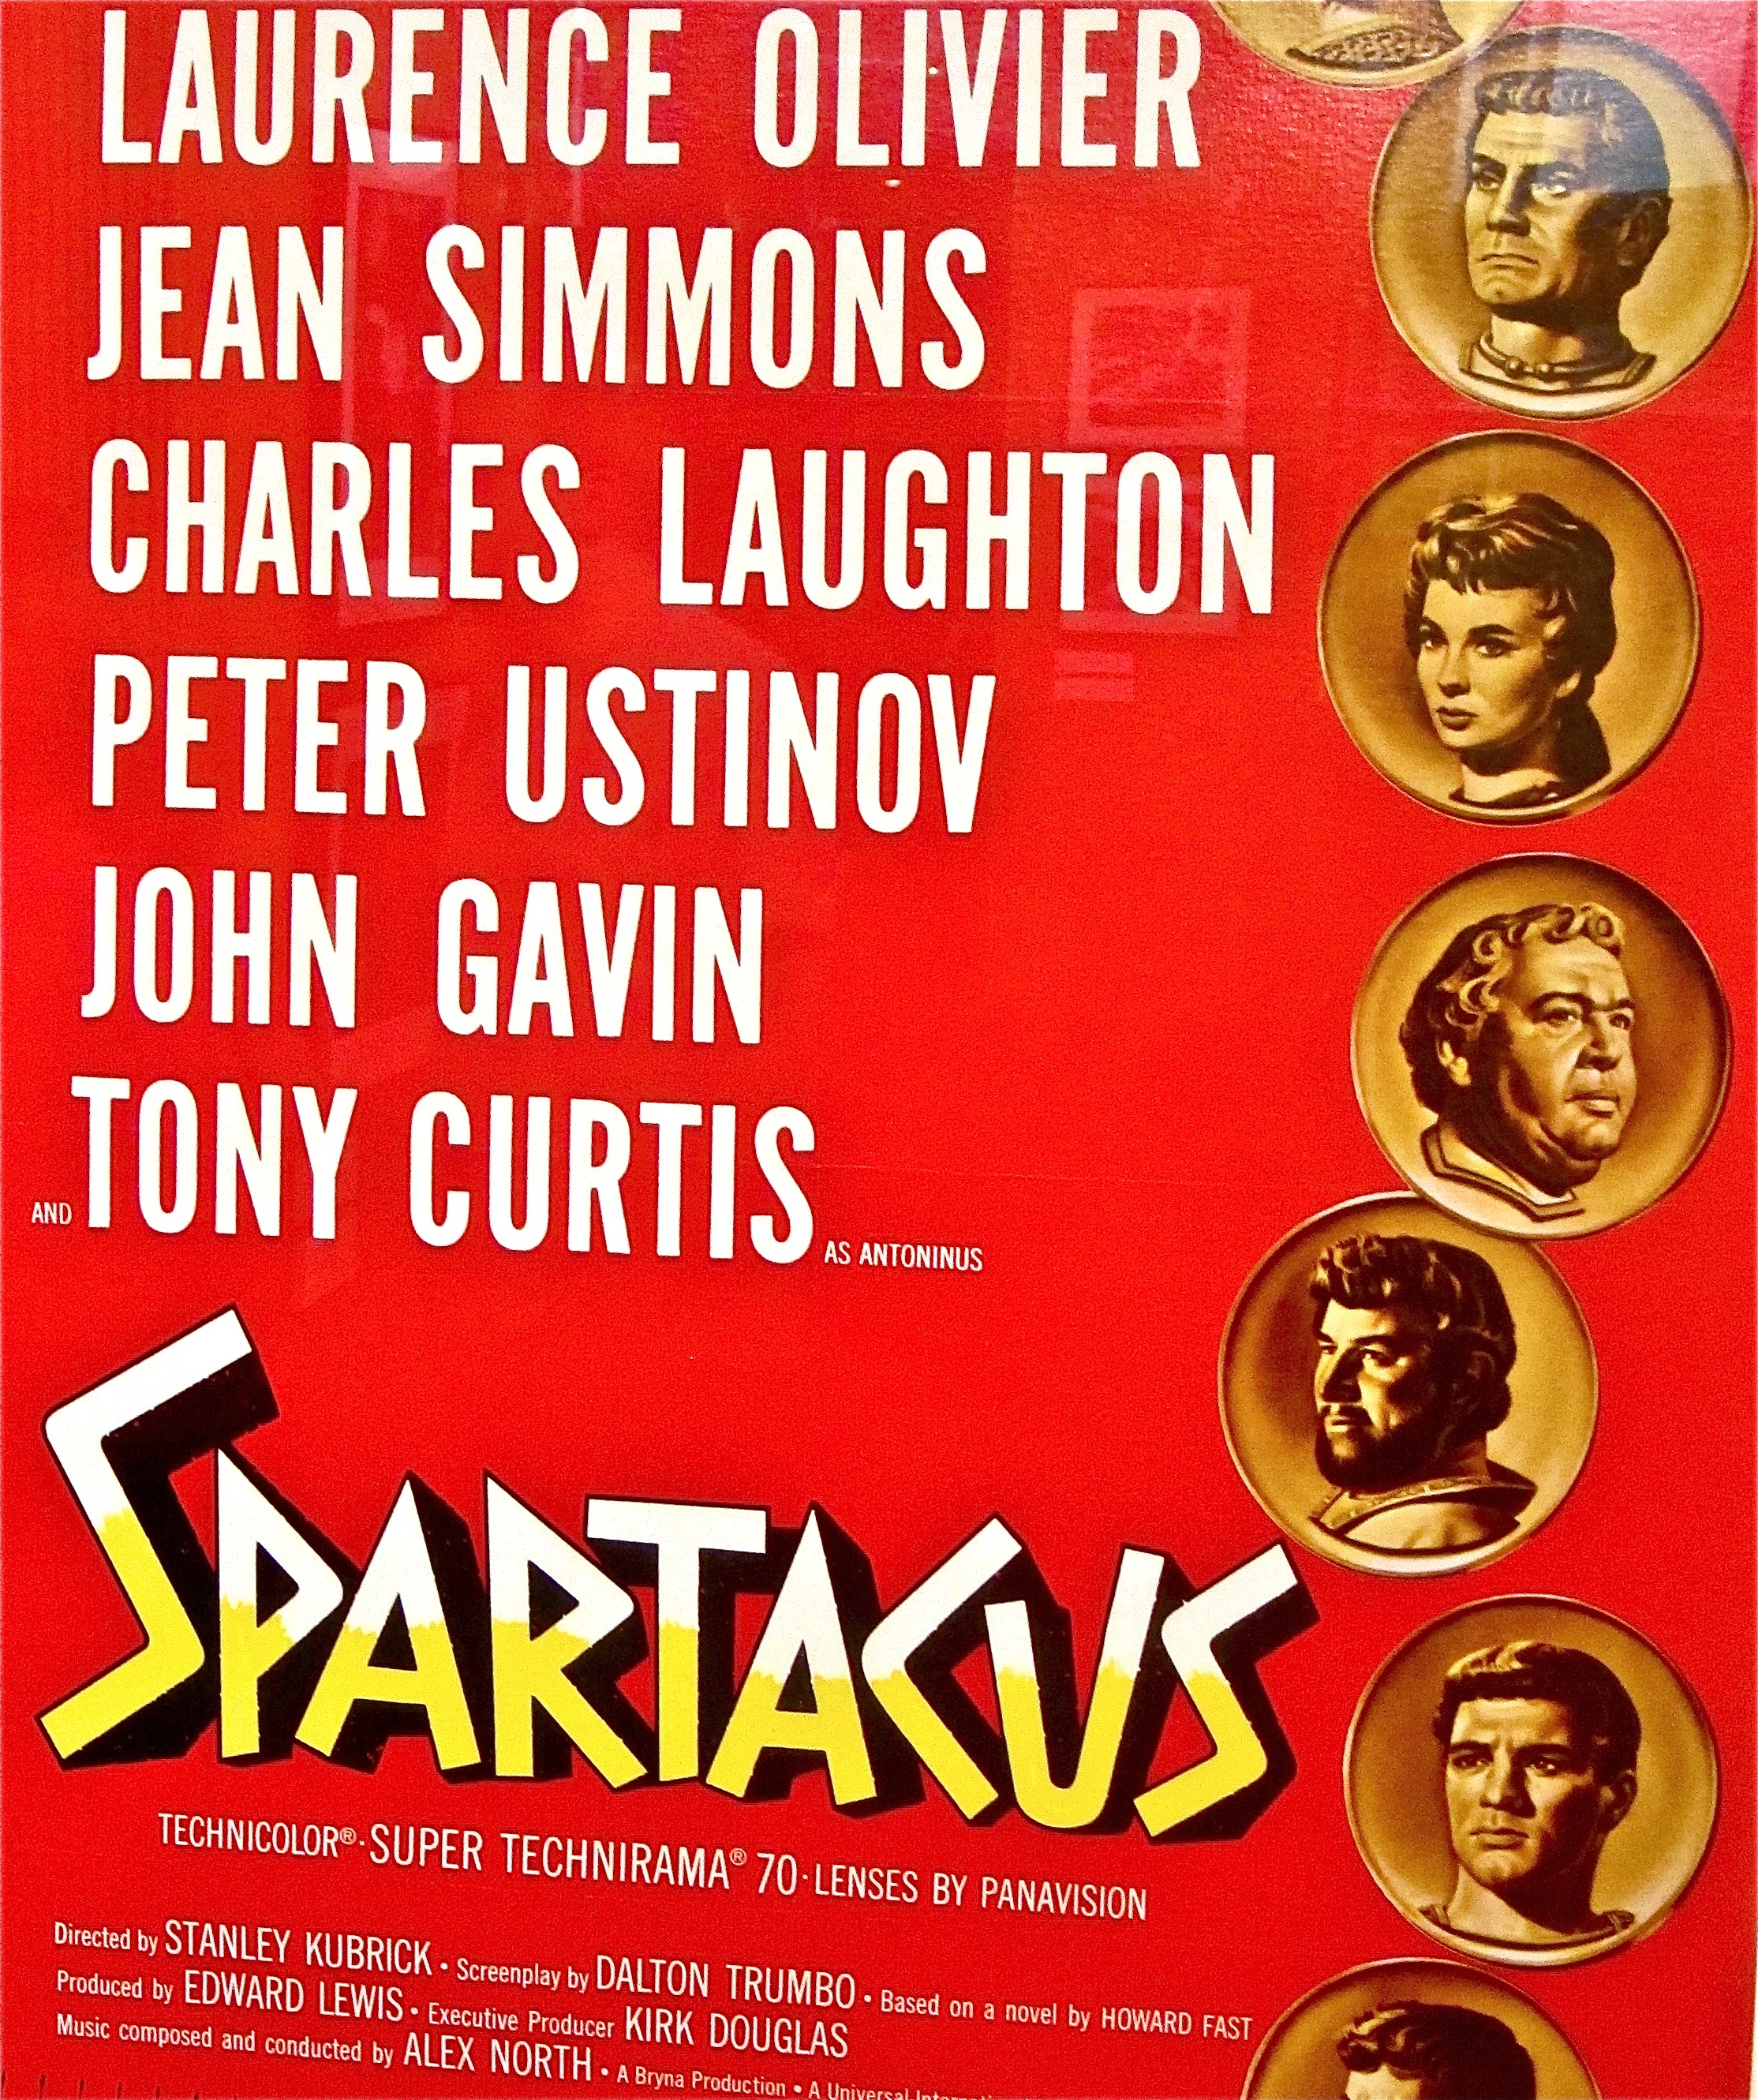 Laurence olivier spartacus quotes - Spartacus Poster